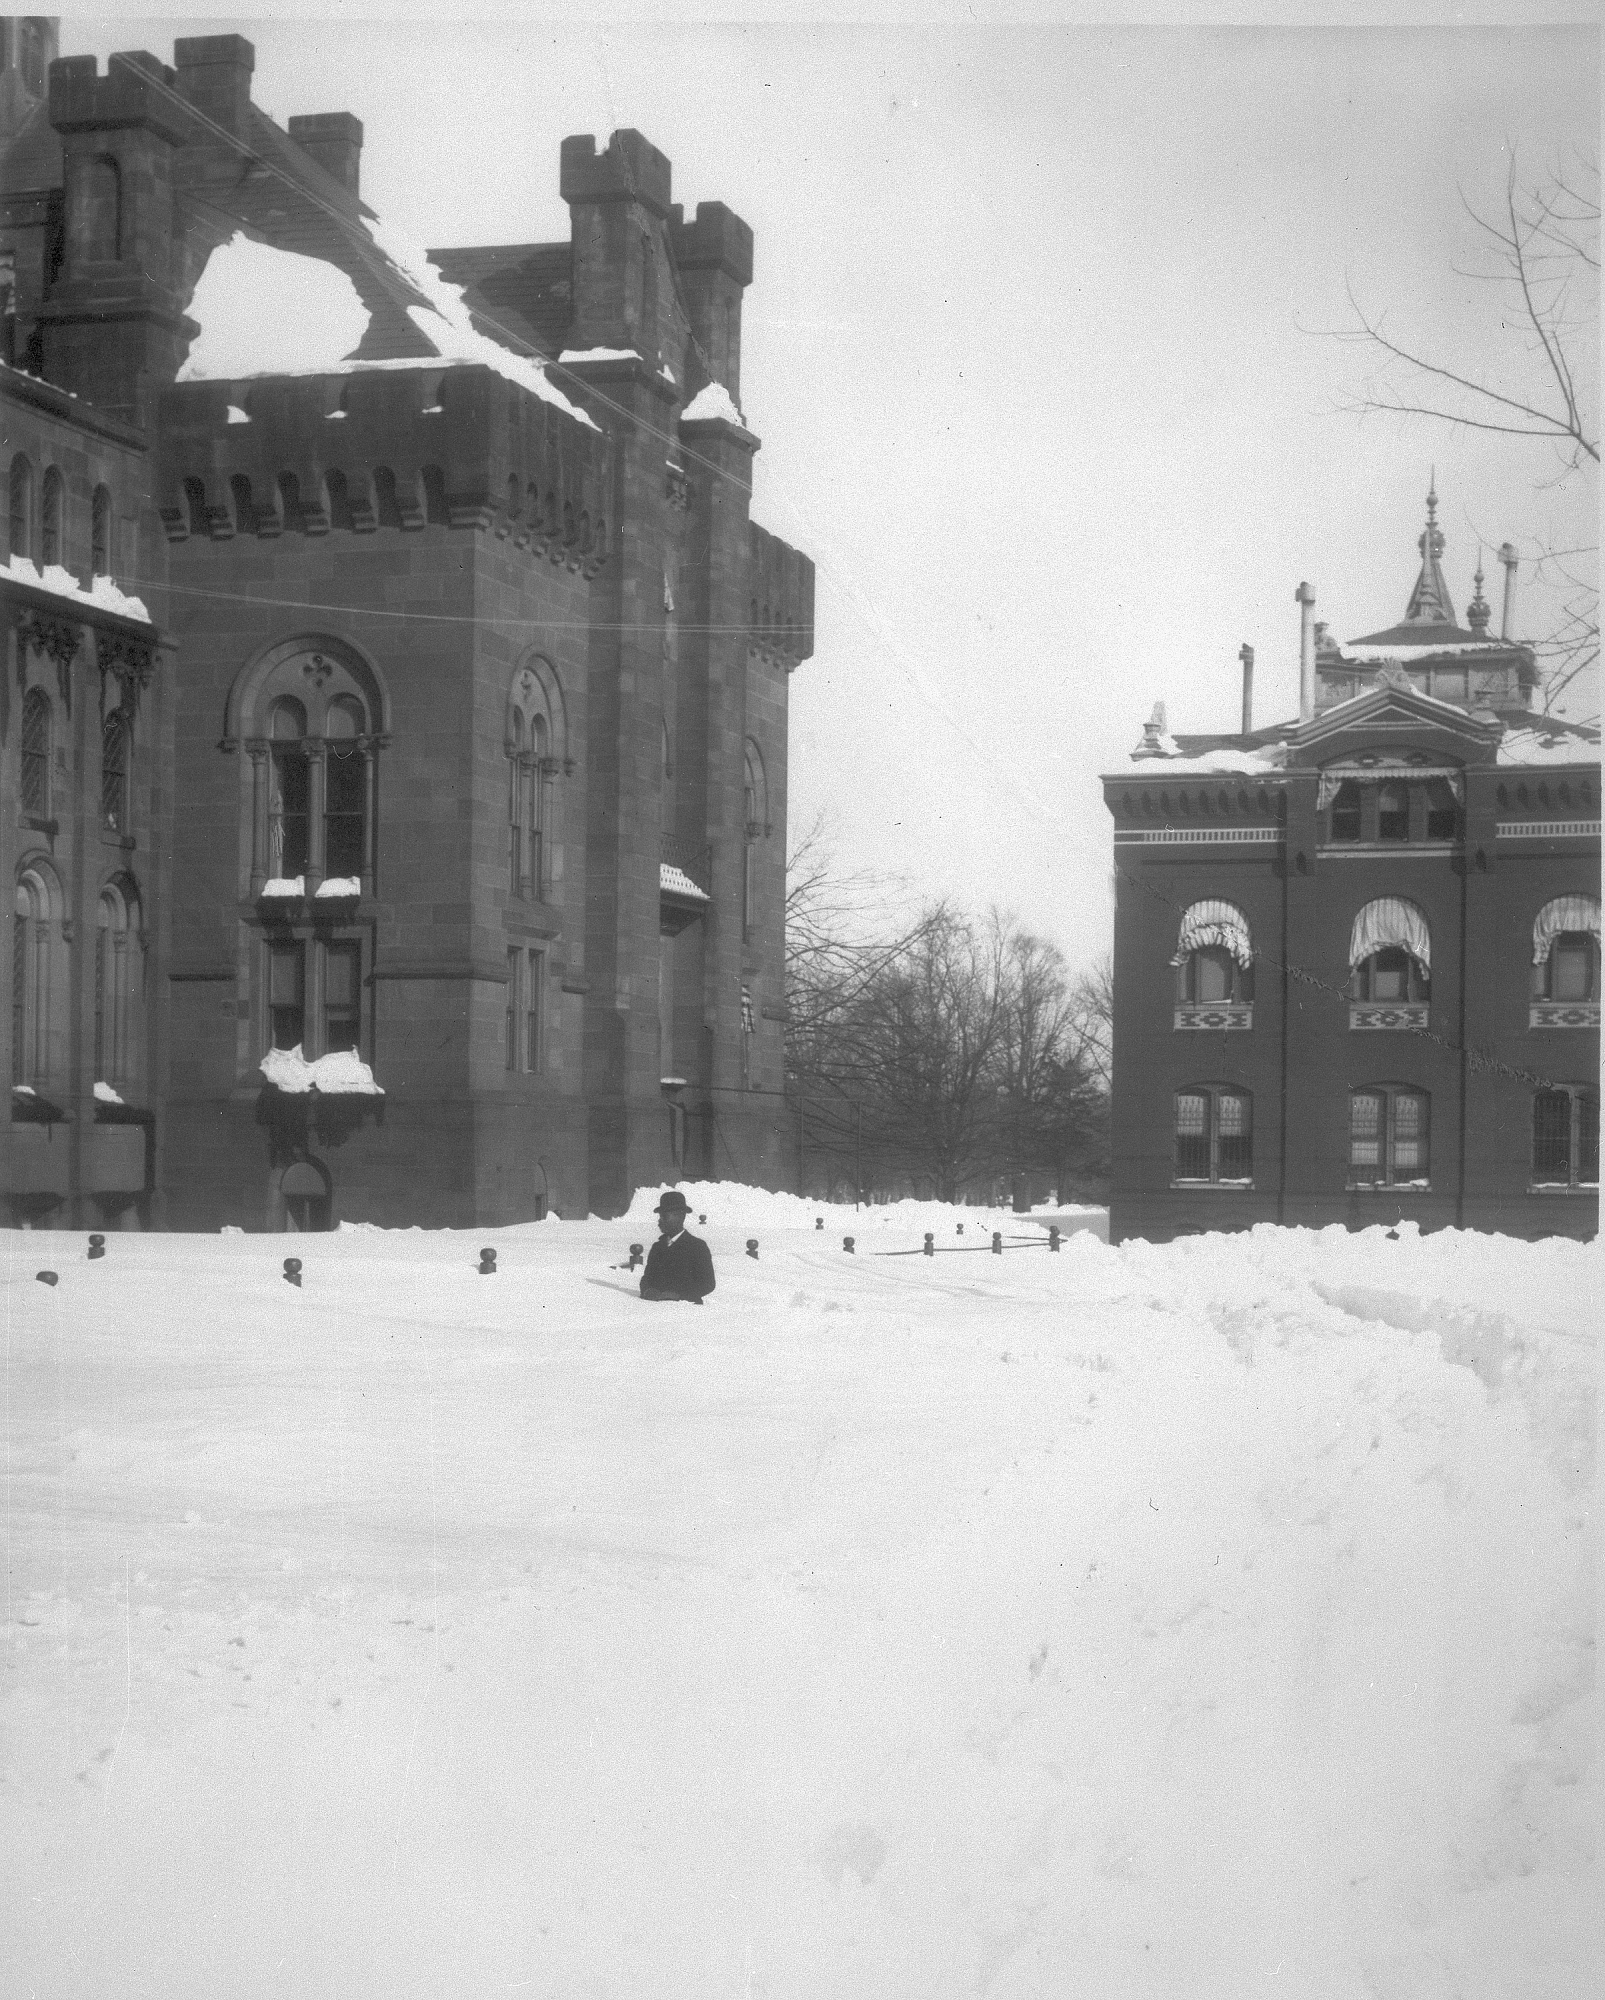 The Smithsonian Castle after the Knickerbocker Snowstorm, 1922.